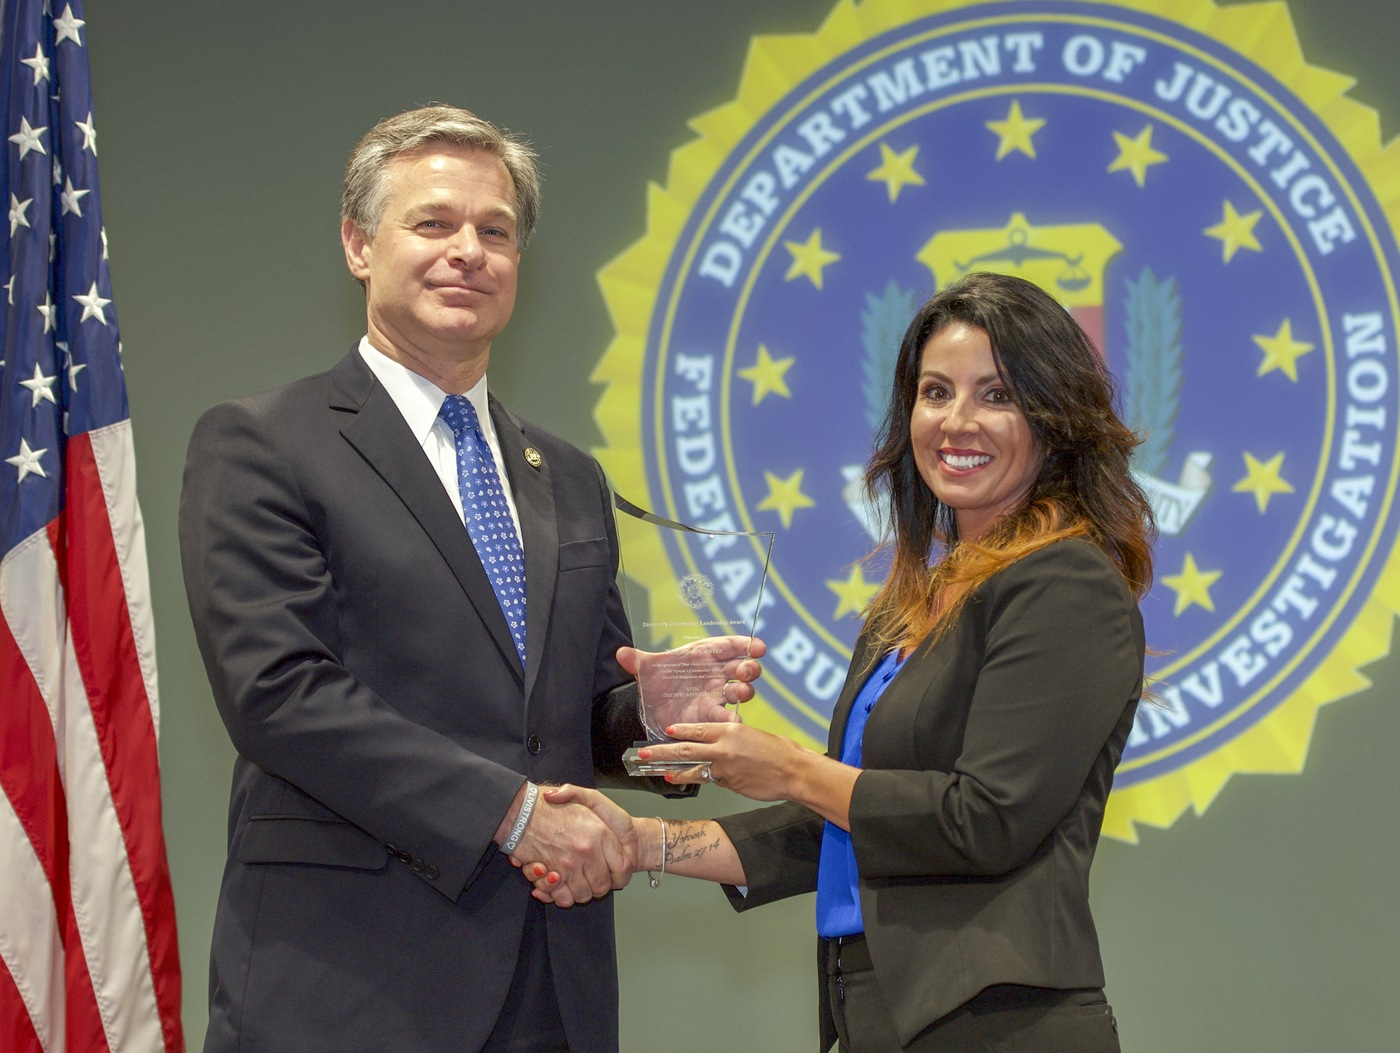 FBI Director Christopher Wray presents Mobile Division recipient The Rose Center (represented by Crystal Yarbrough) with the Director's Community Leadership Award (DCLA) at a ceremony at FBI Headquarters on May 3, 2019.